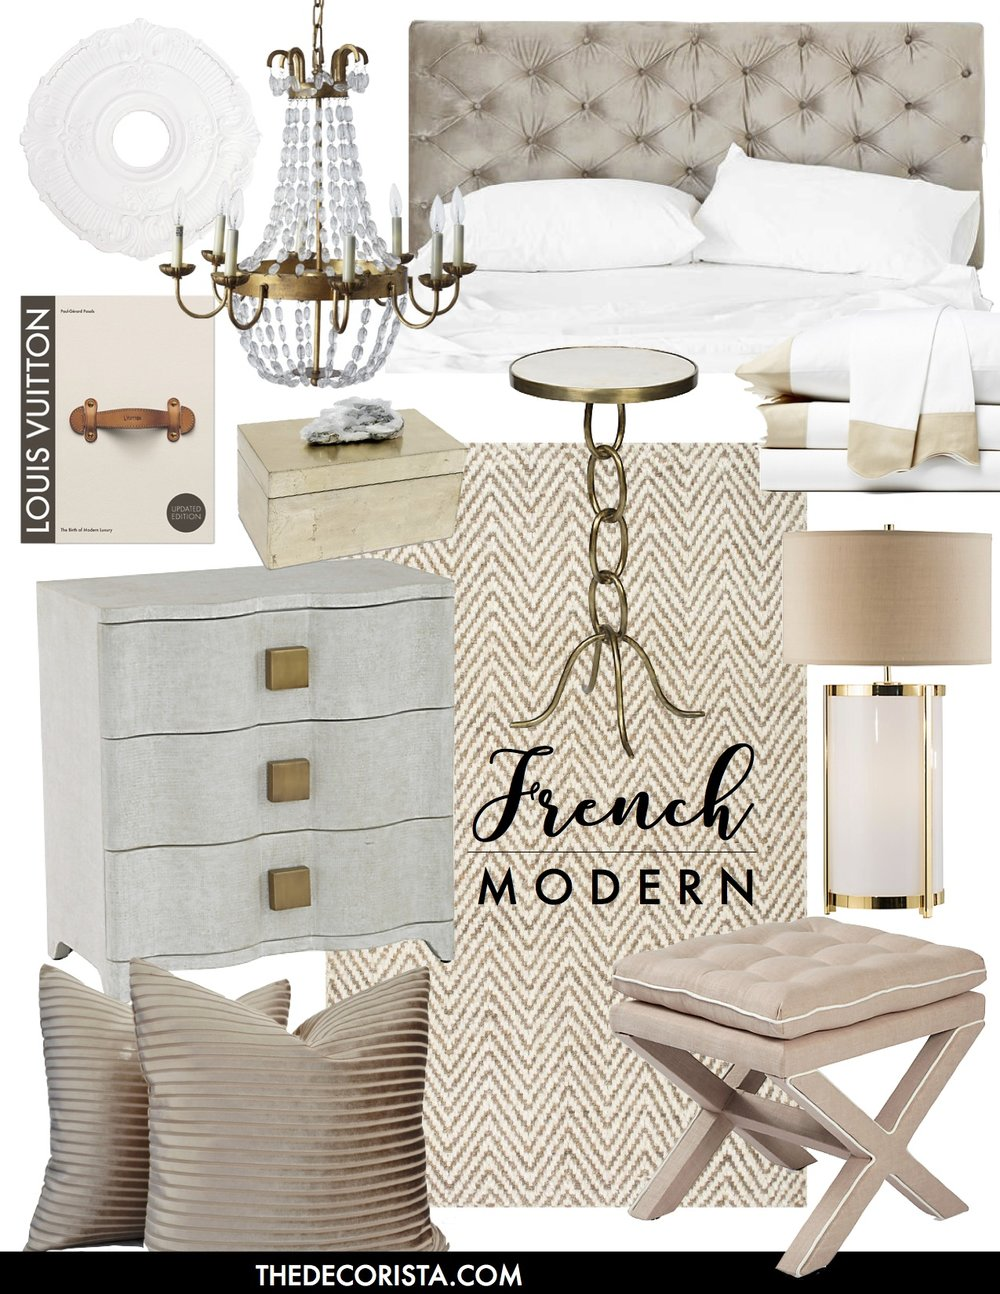 French Modern Mix